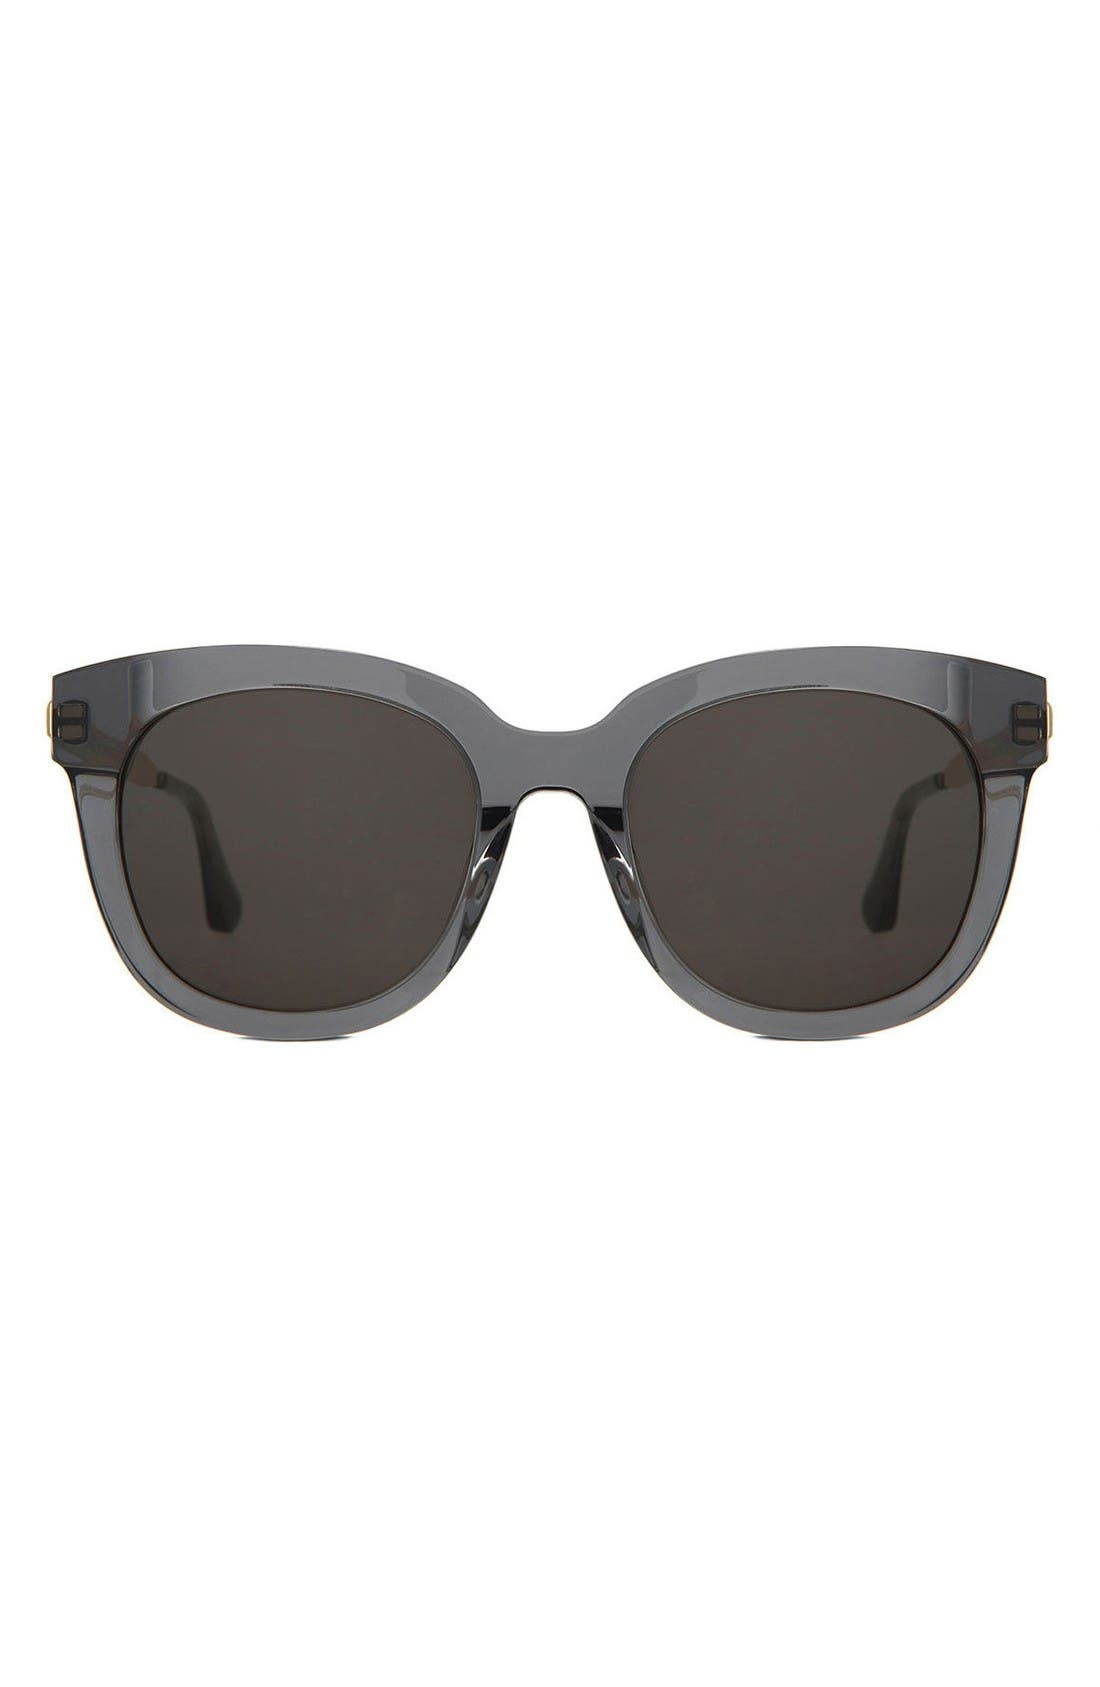 GENTLE MONSTER Cuba 55mm Sunglasses